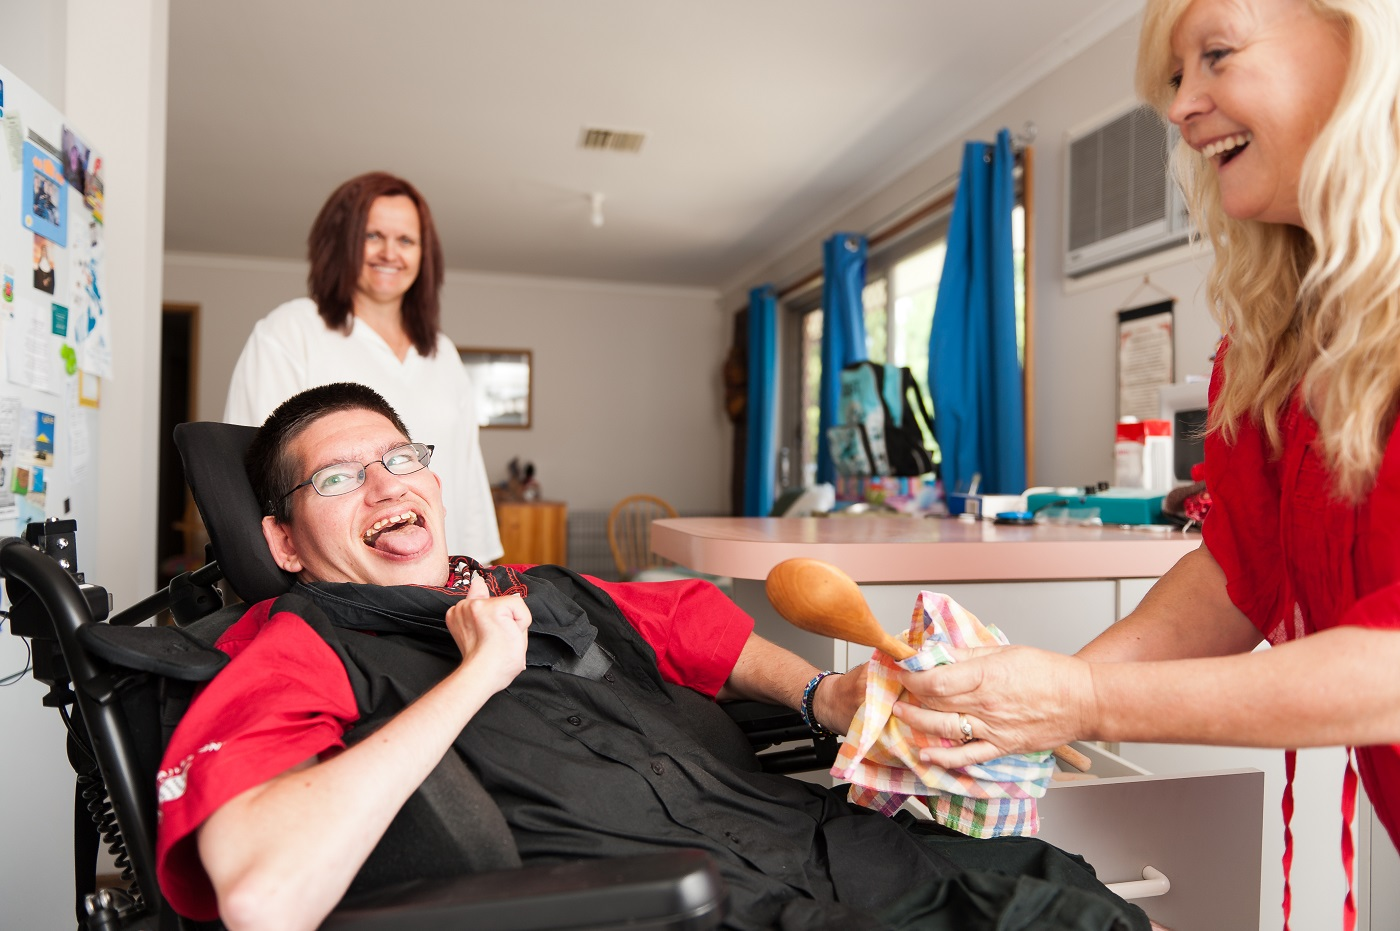 Young man with a neurological disorder being helped to wipe dry a wooden spoon.